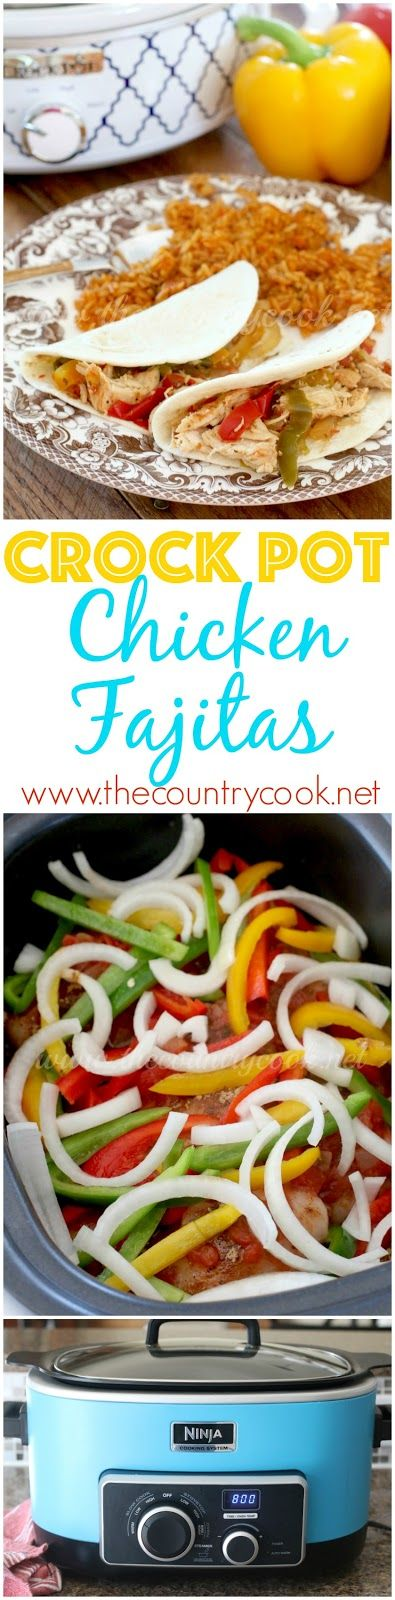 Crock Pot Chicken Fajitas recipe from The Country Cook - a perfect slow cooker meal! This was so easy but the chicken was so juicy and had tons of flavor.